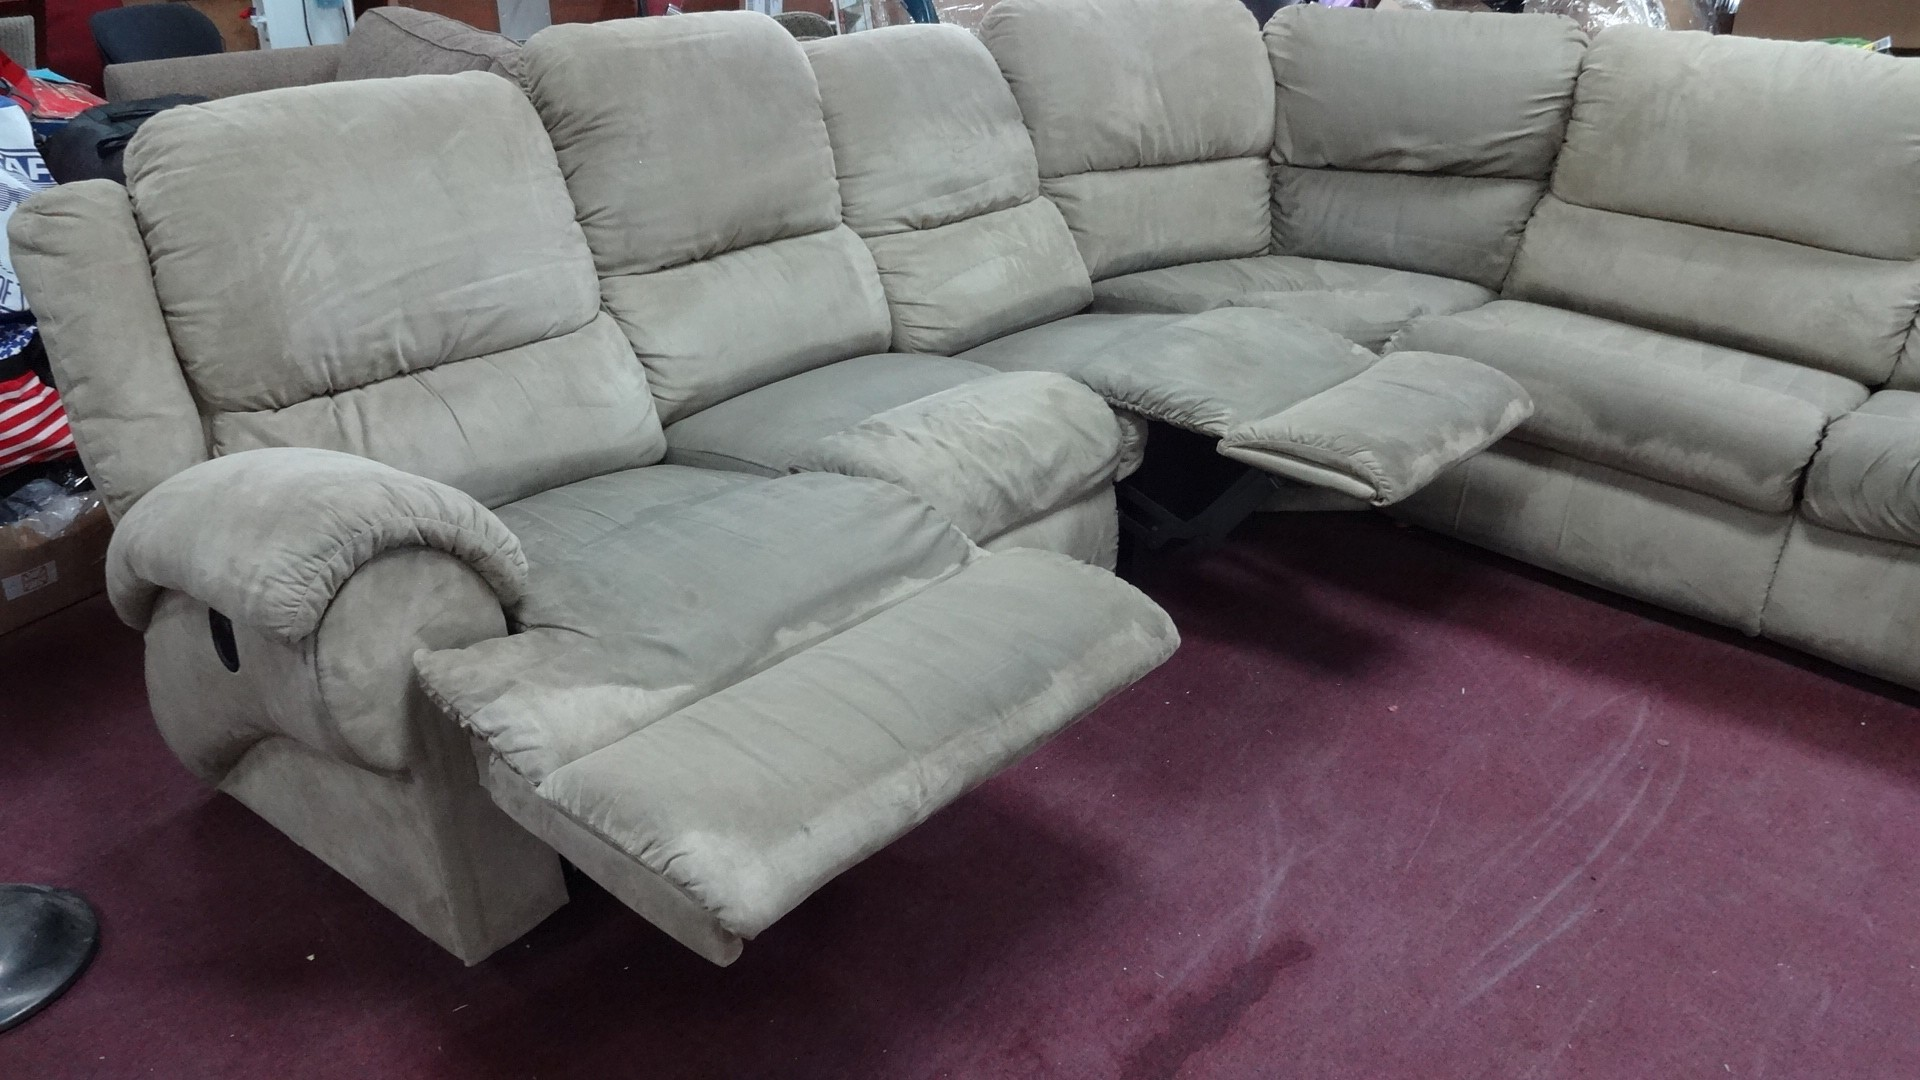 Couch & Sofa: Comfortable Lazy Boy Sectional Recliner For ...